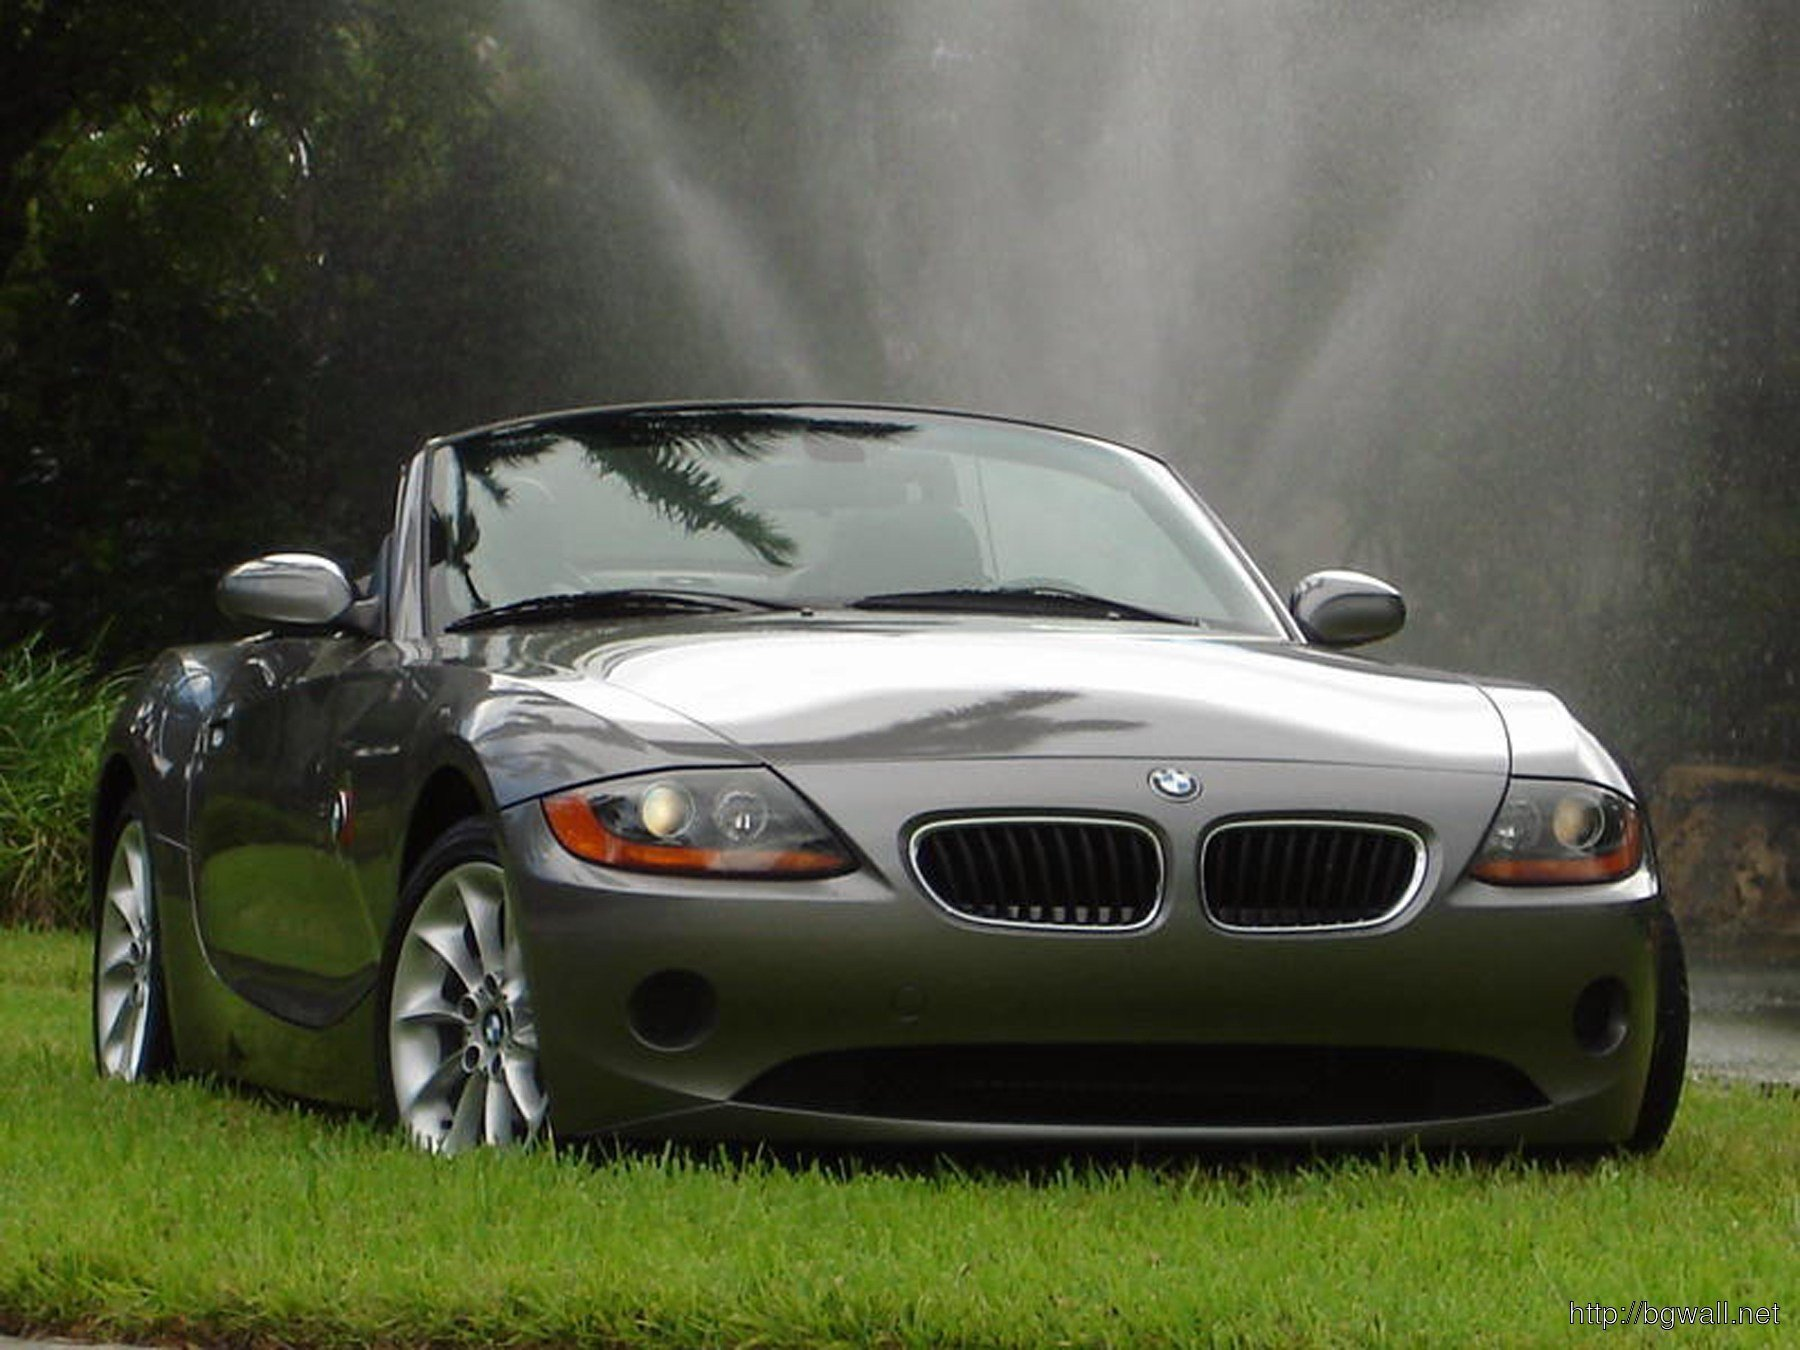 Latest Bmw Z4 Hd Photo – Background Wallpaper Hd Free Download